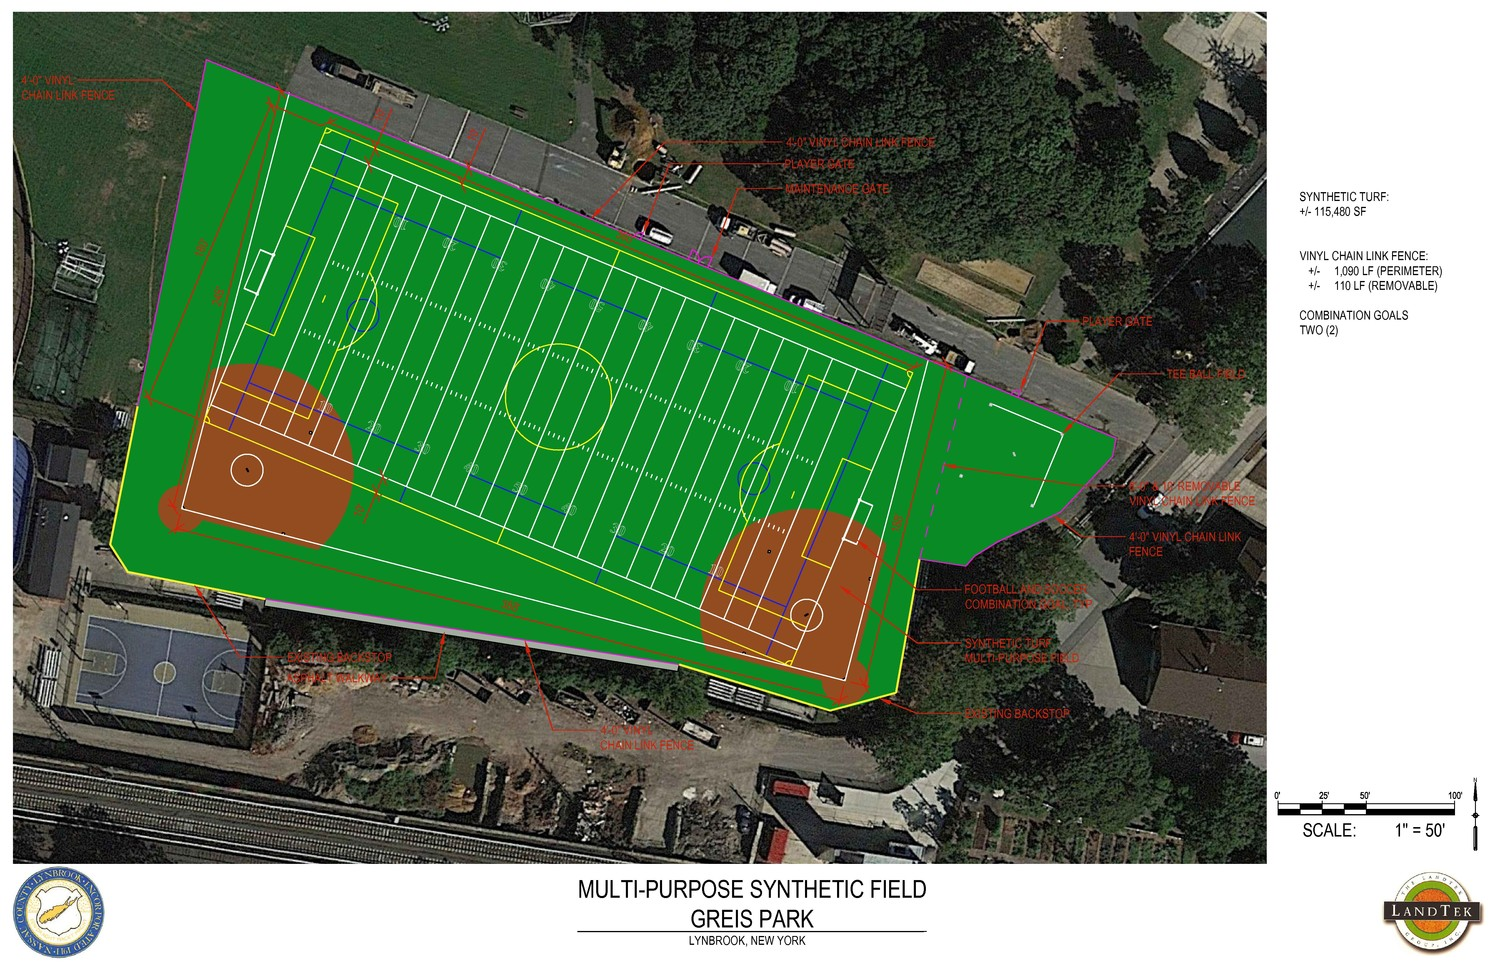 Representatives of The LandTek Group, based in Amityville, proposed building a $1.4 million turf field at Greis Park to the Lynbrook village board on March 5. Village officials have expressed interest, but are still thinking it over.